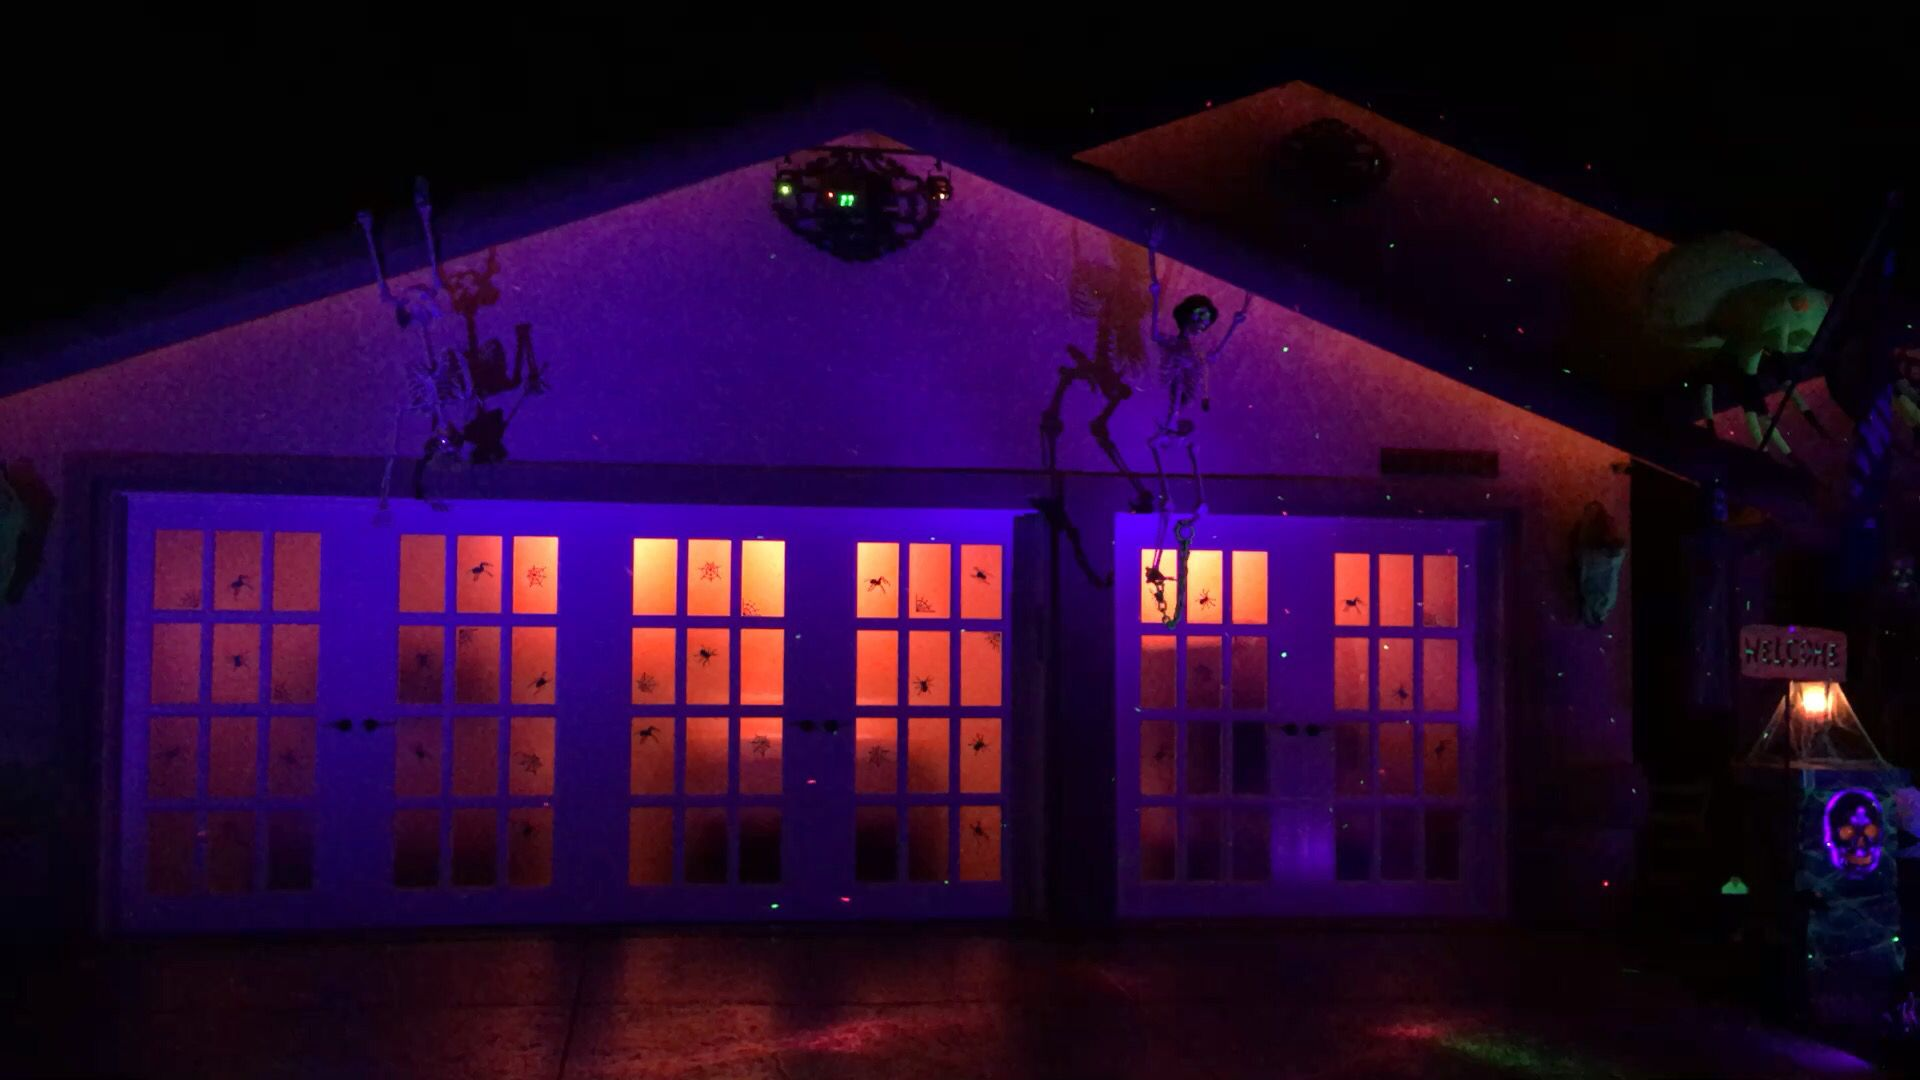 Our Frenchporte garage doors really let us add to the party with - Halloween Garage Door Decorations